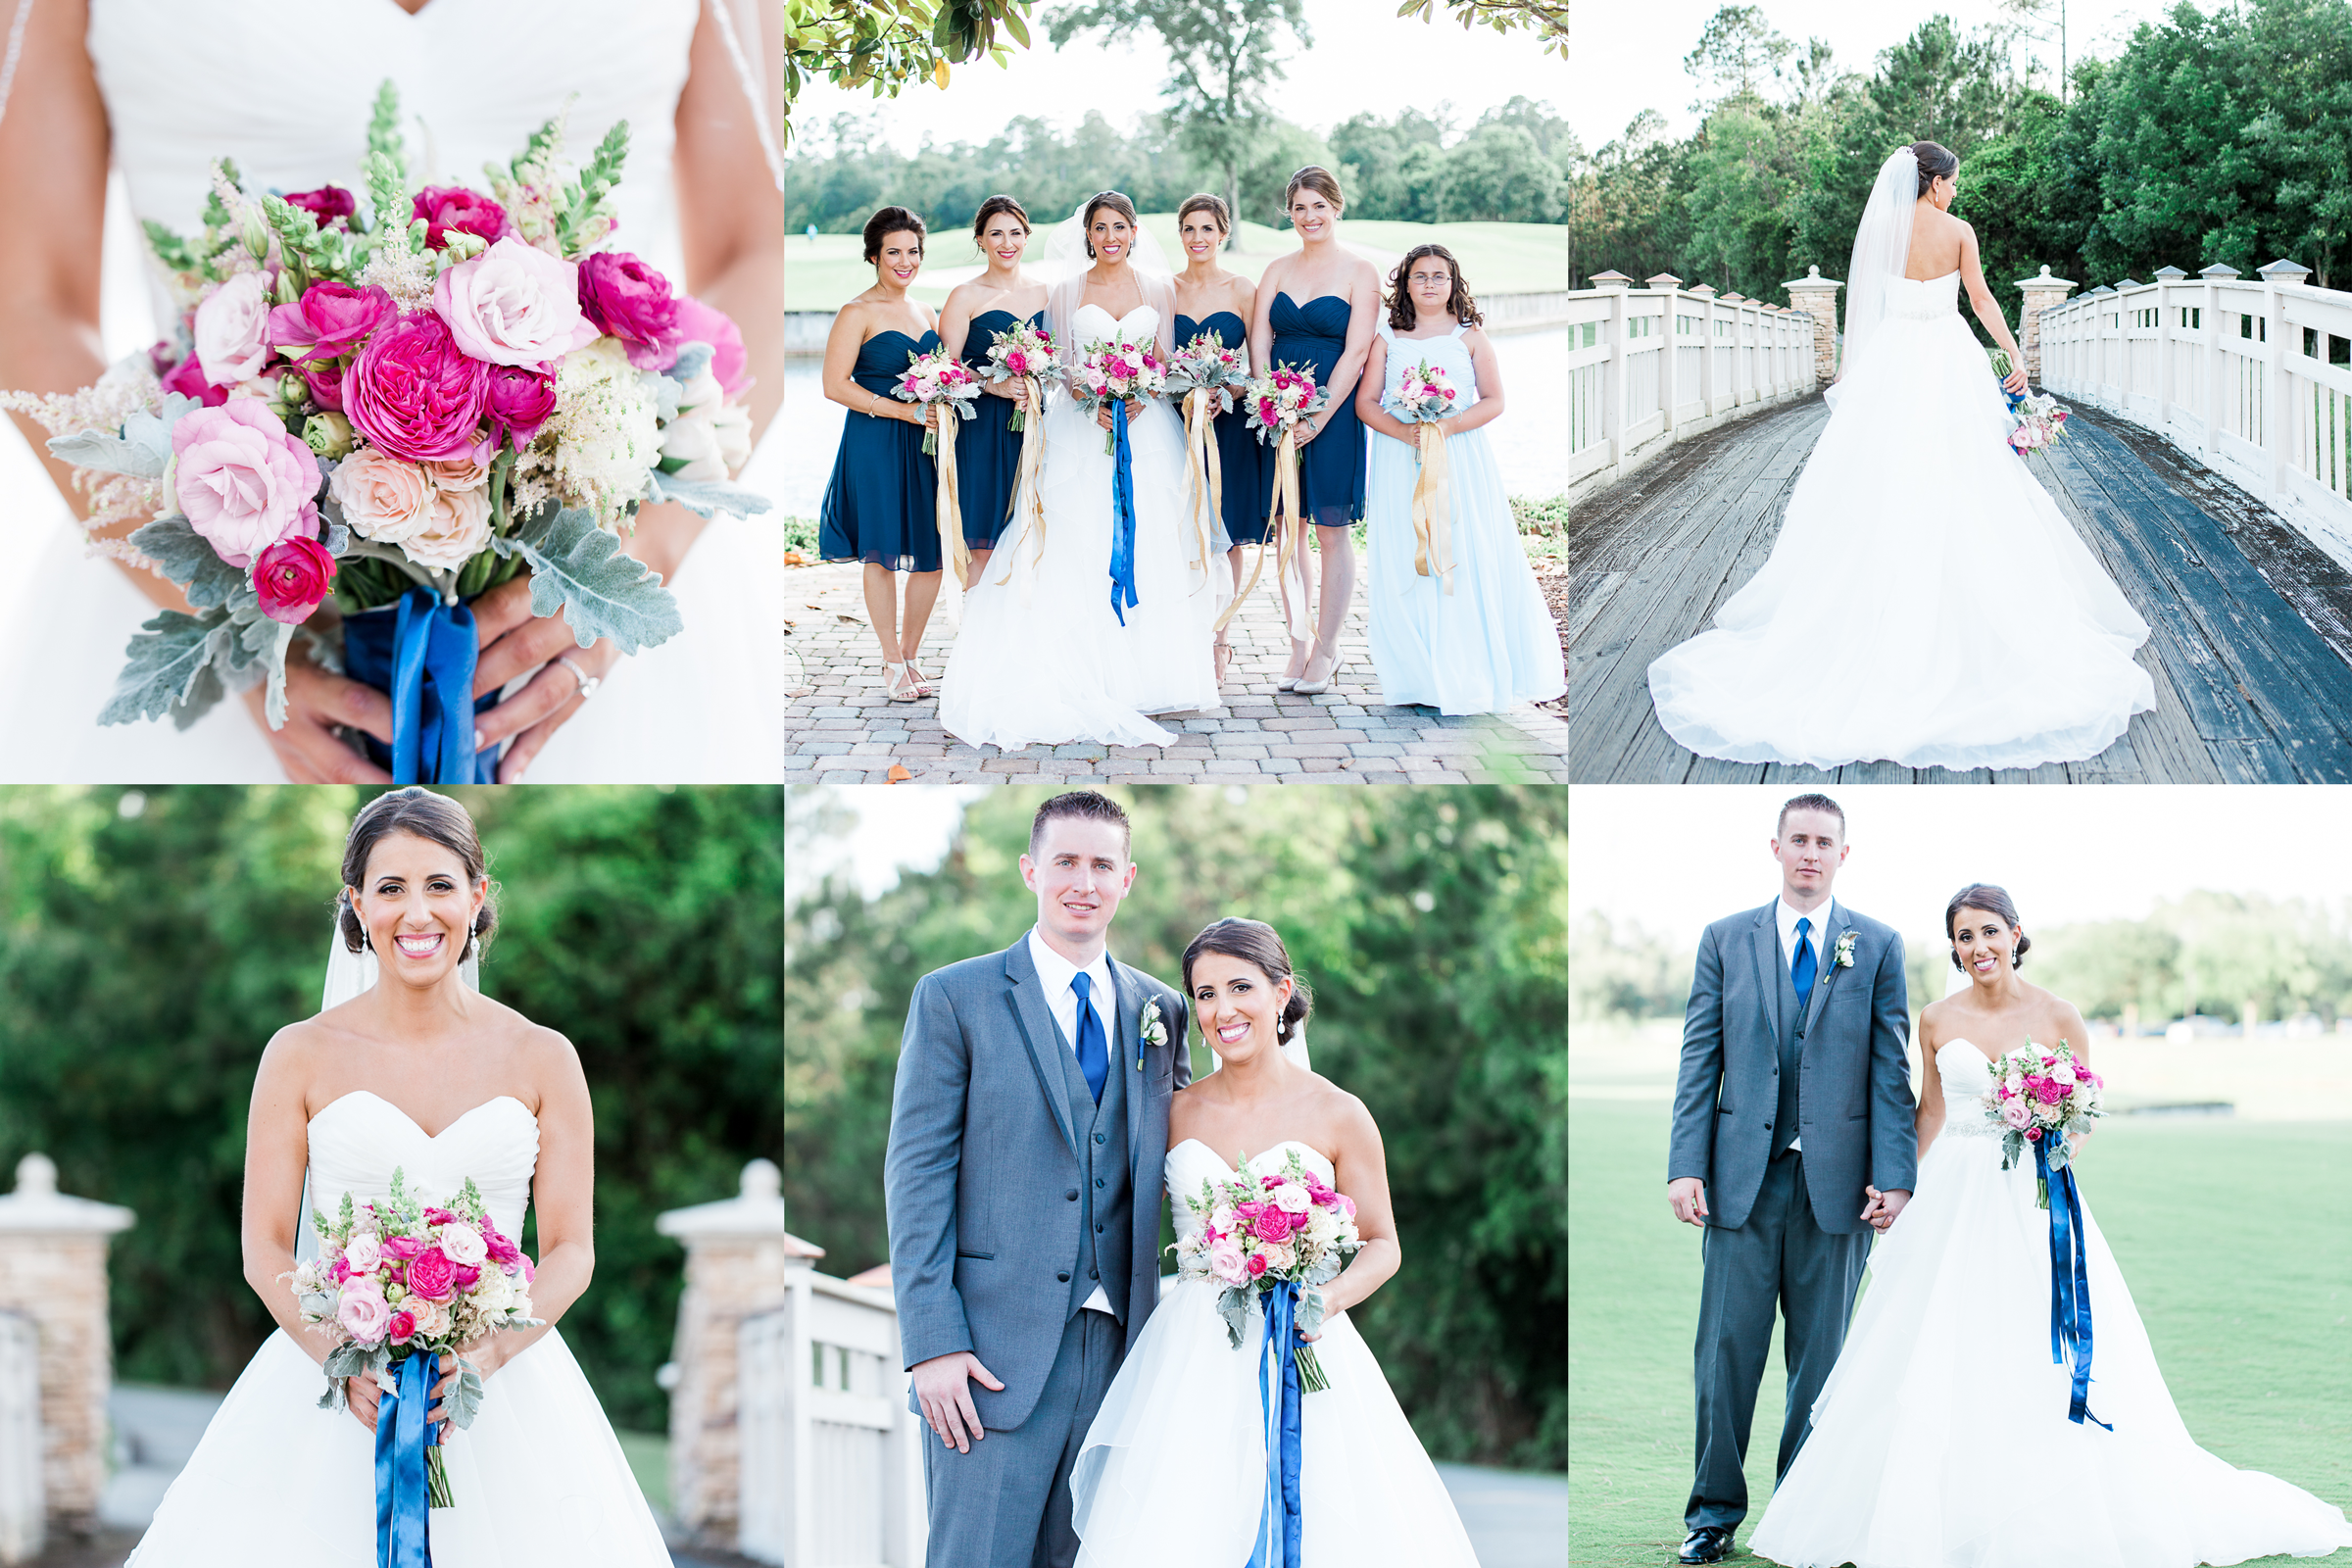 Wedding venue St.Johns Golf & Country Club   Bride and groom   Bridesmaids   Flowers